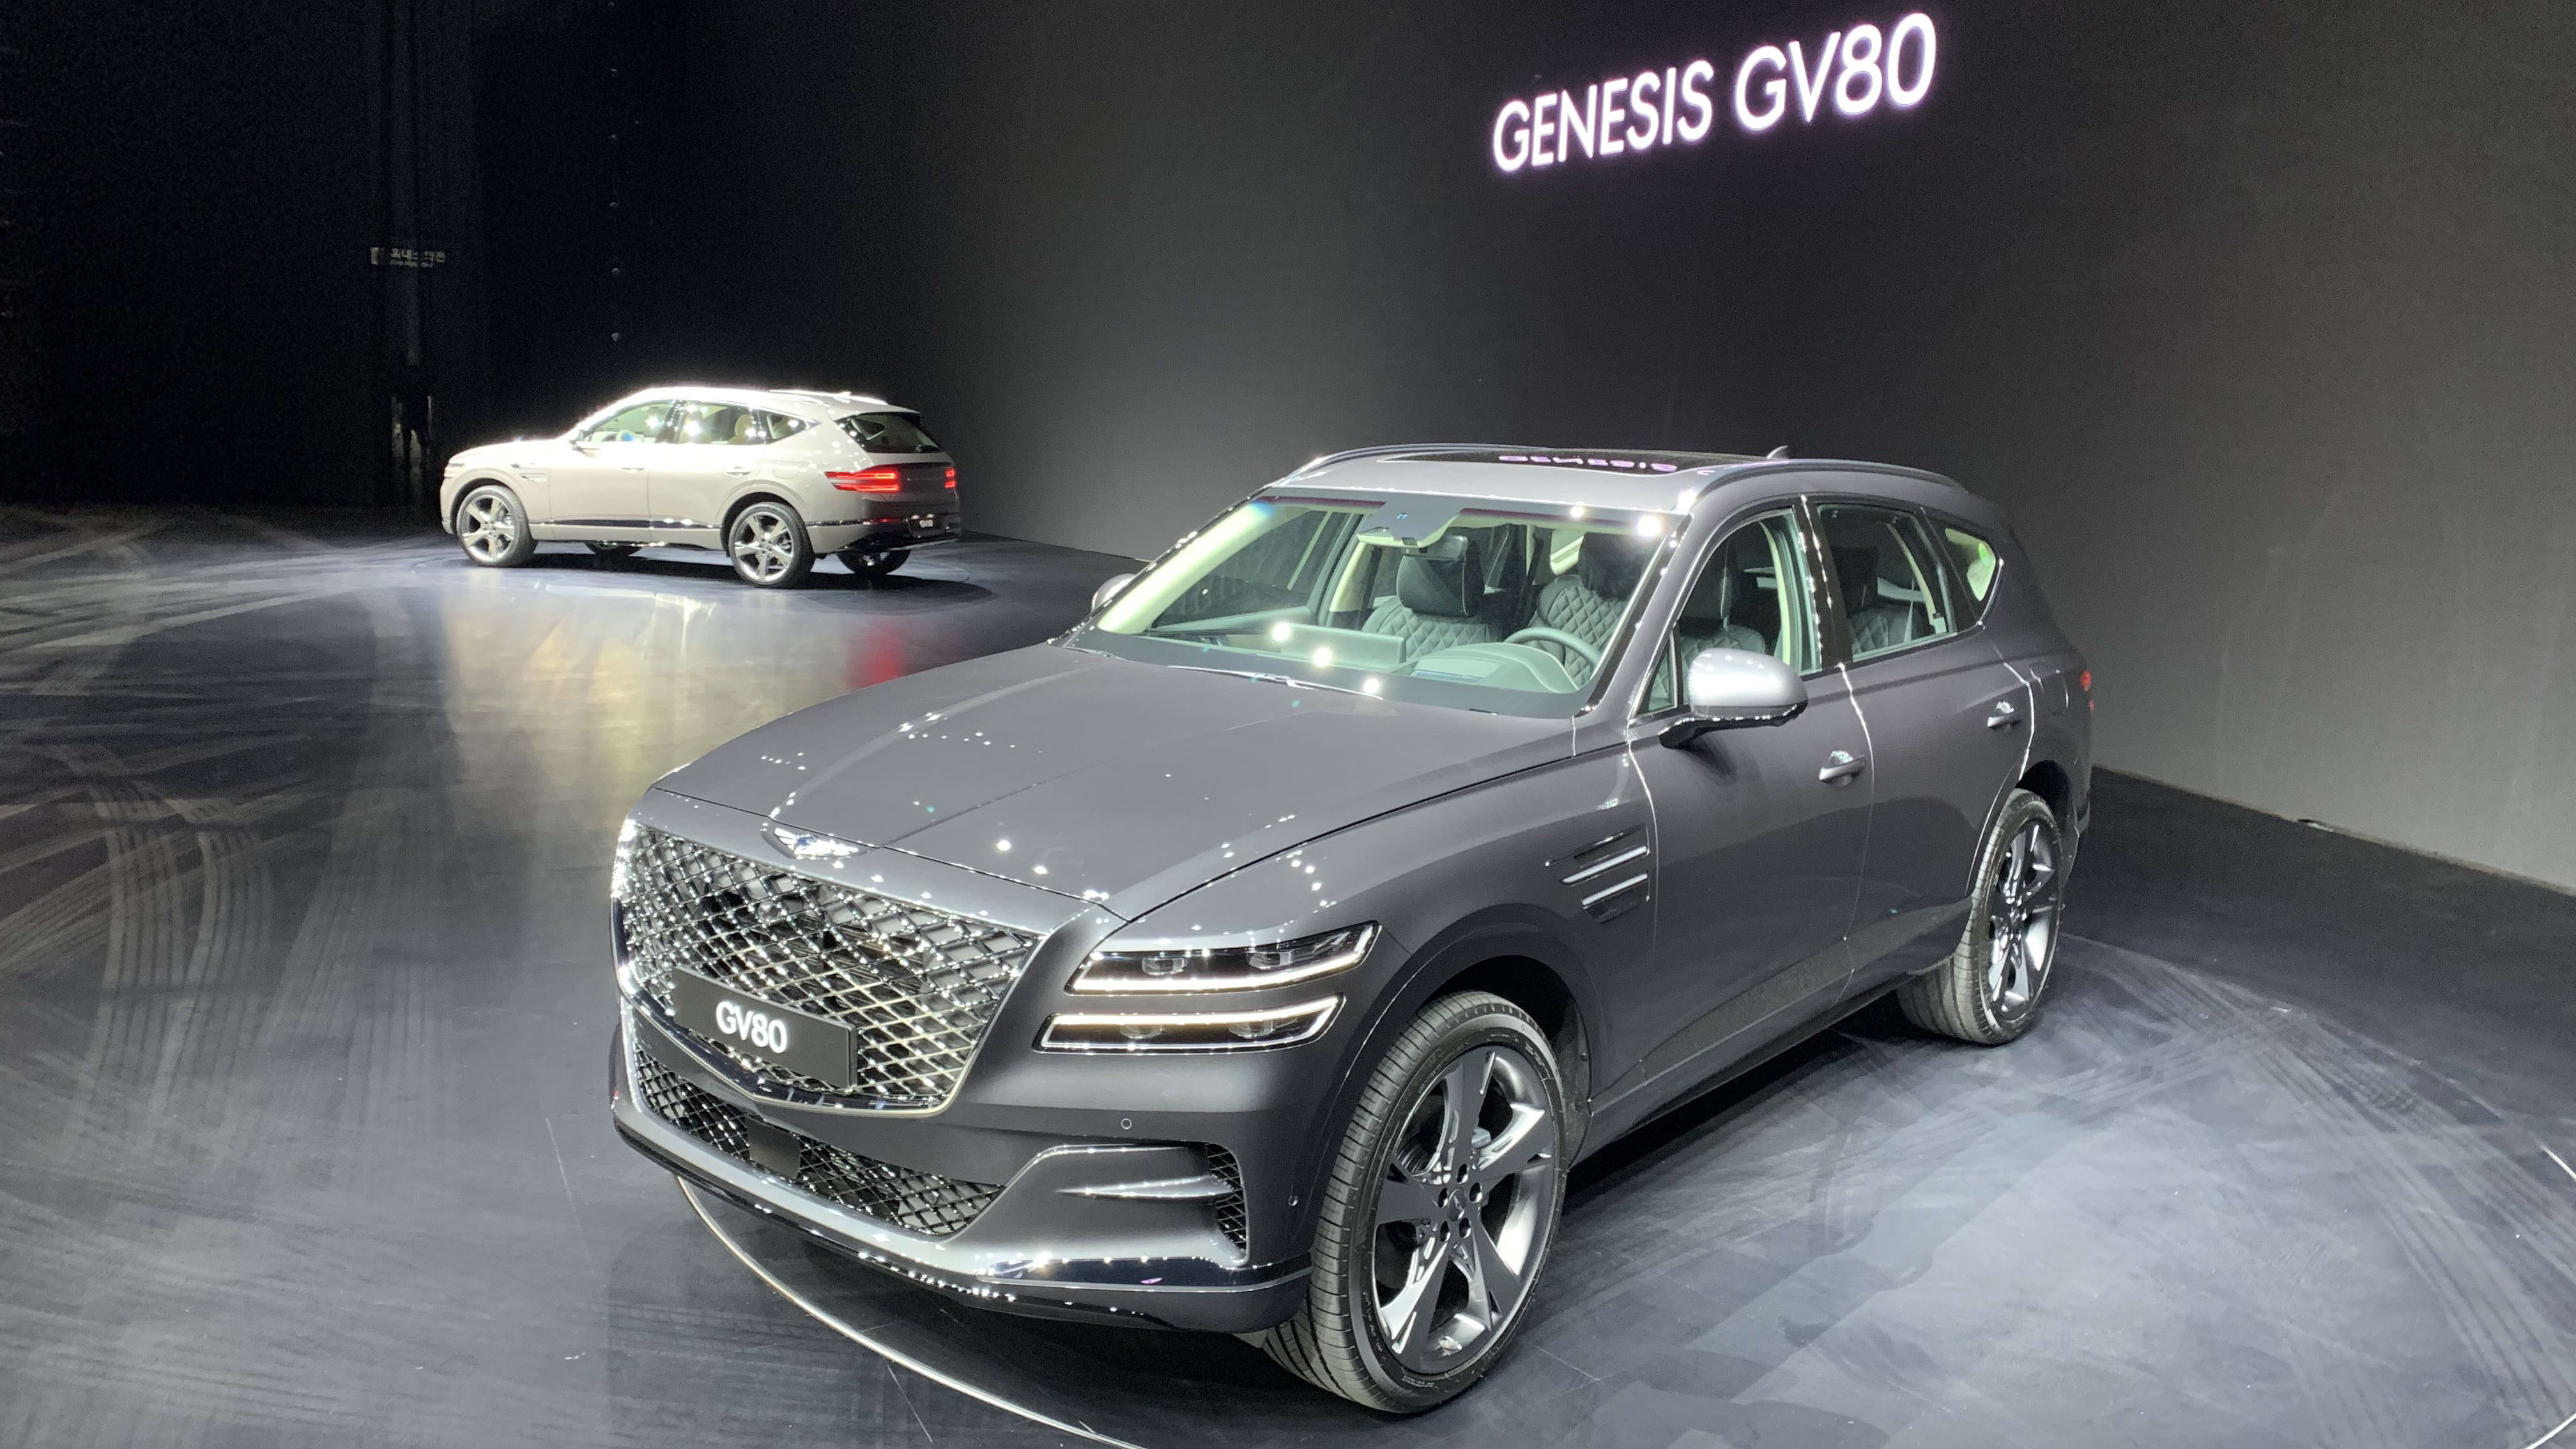 2020 Genesis Gv80 Suv Revealed In Detail Due In Australia Around July Caradvice